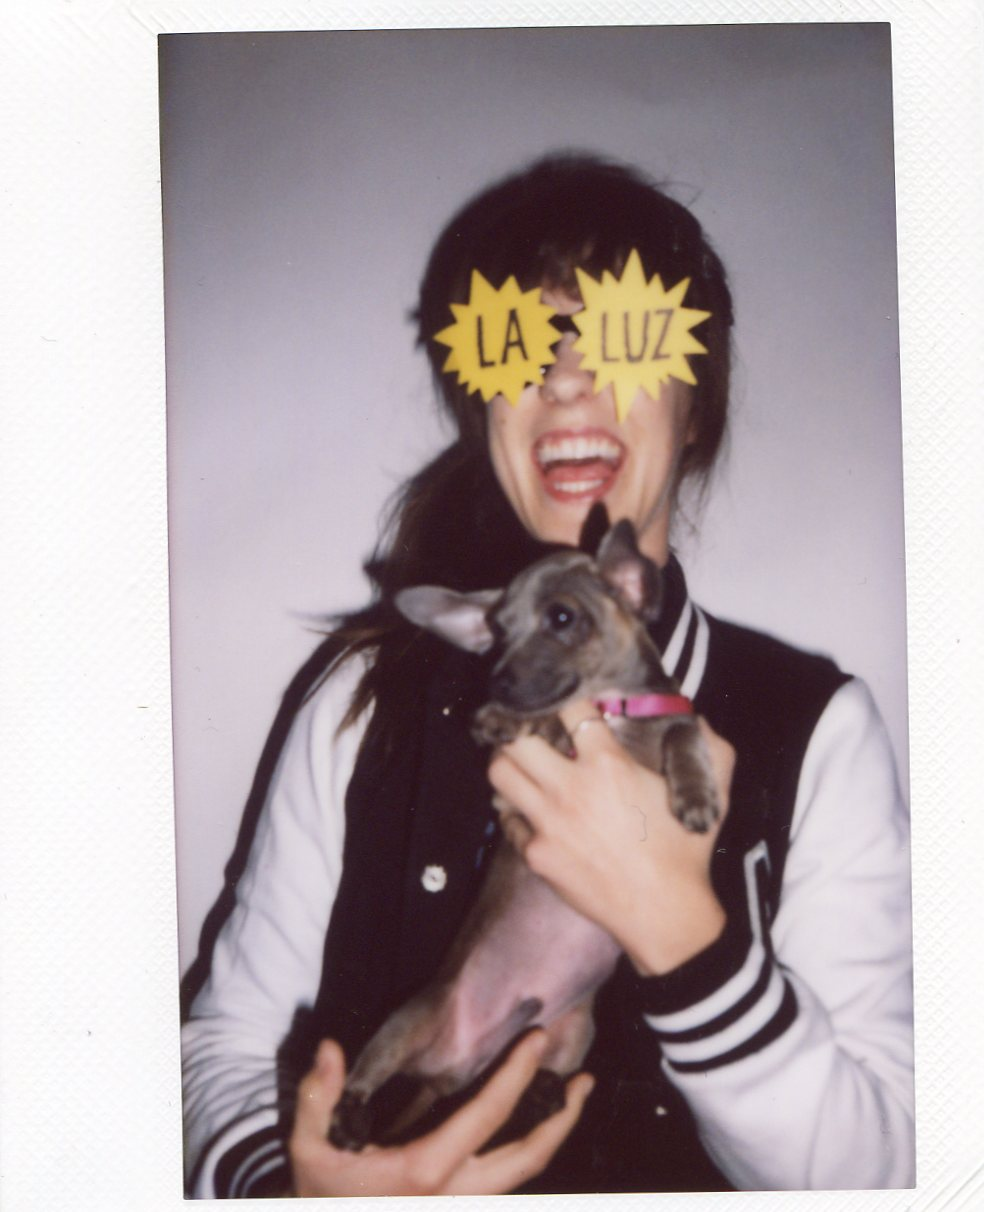 Allie from Peach Kelli Pop stopped by with her puppy Rudolph